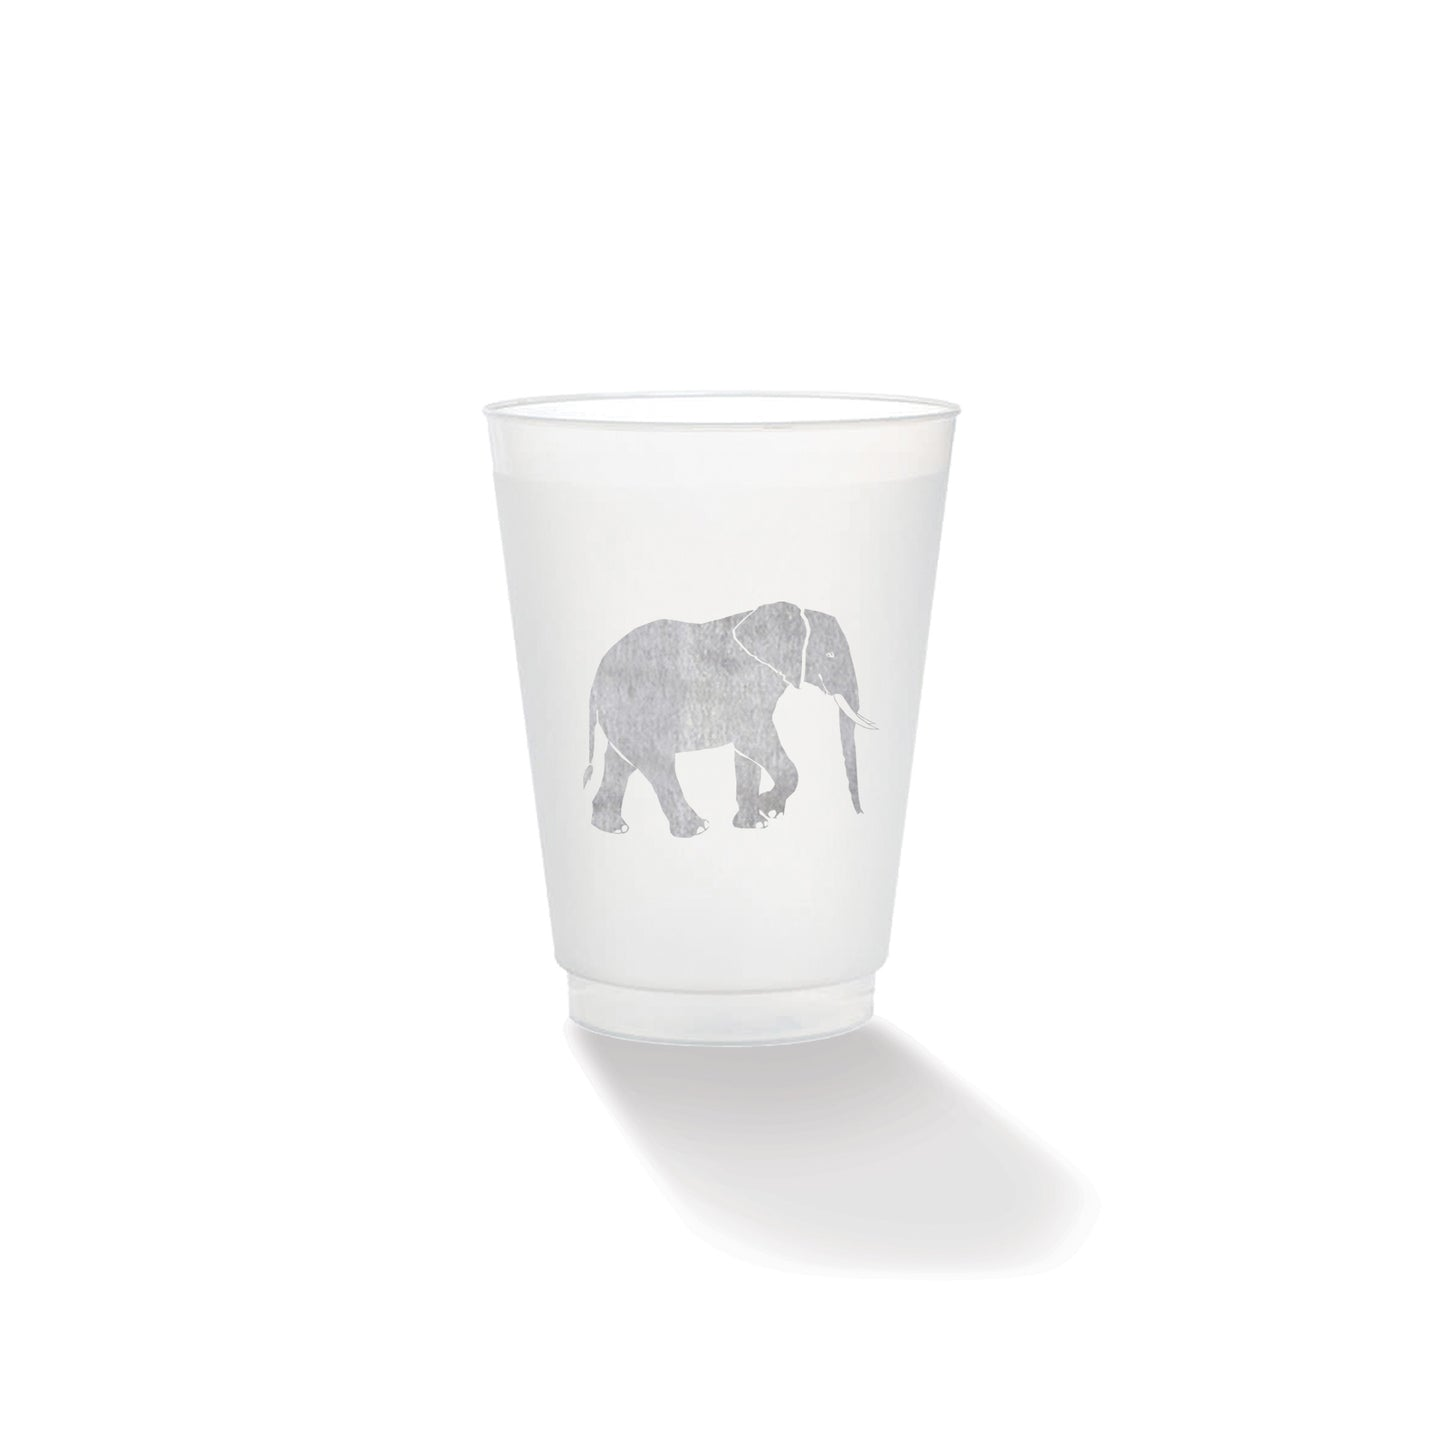 Elephant Frosted Cup (set of 10)